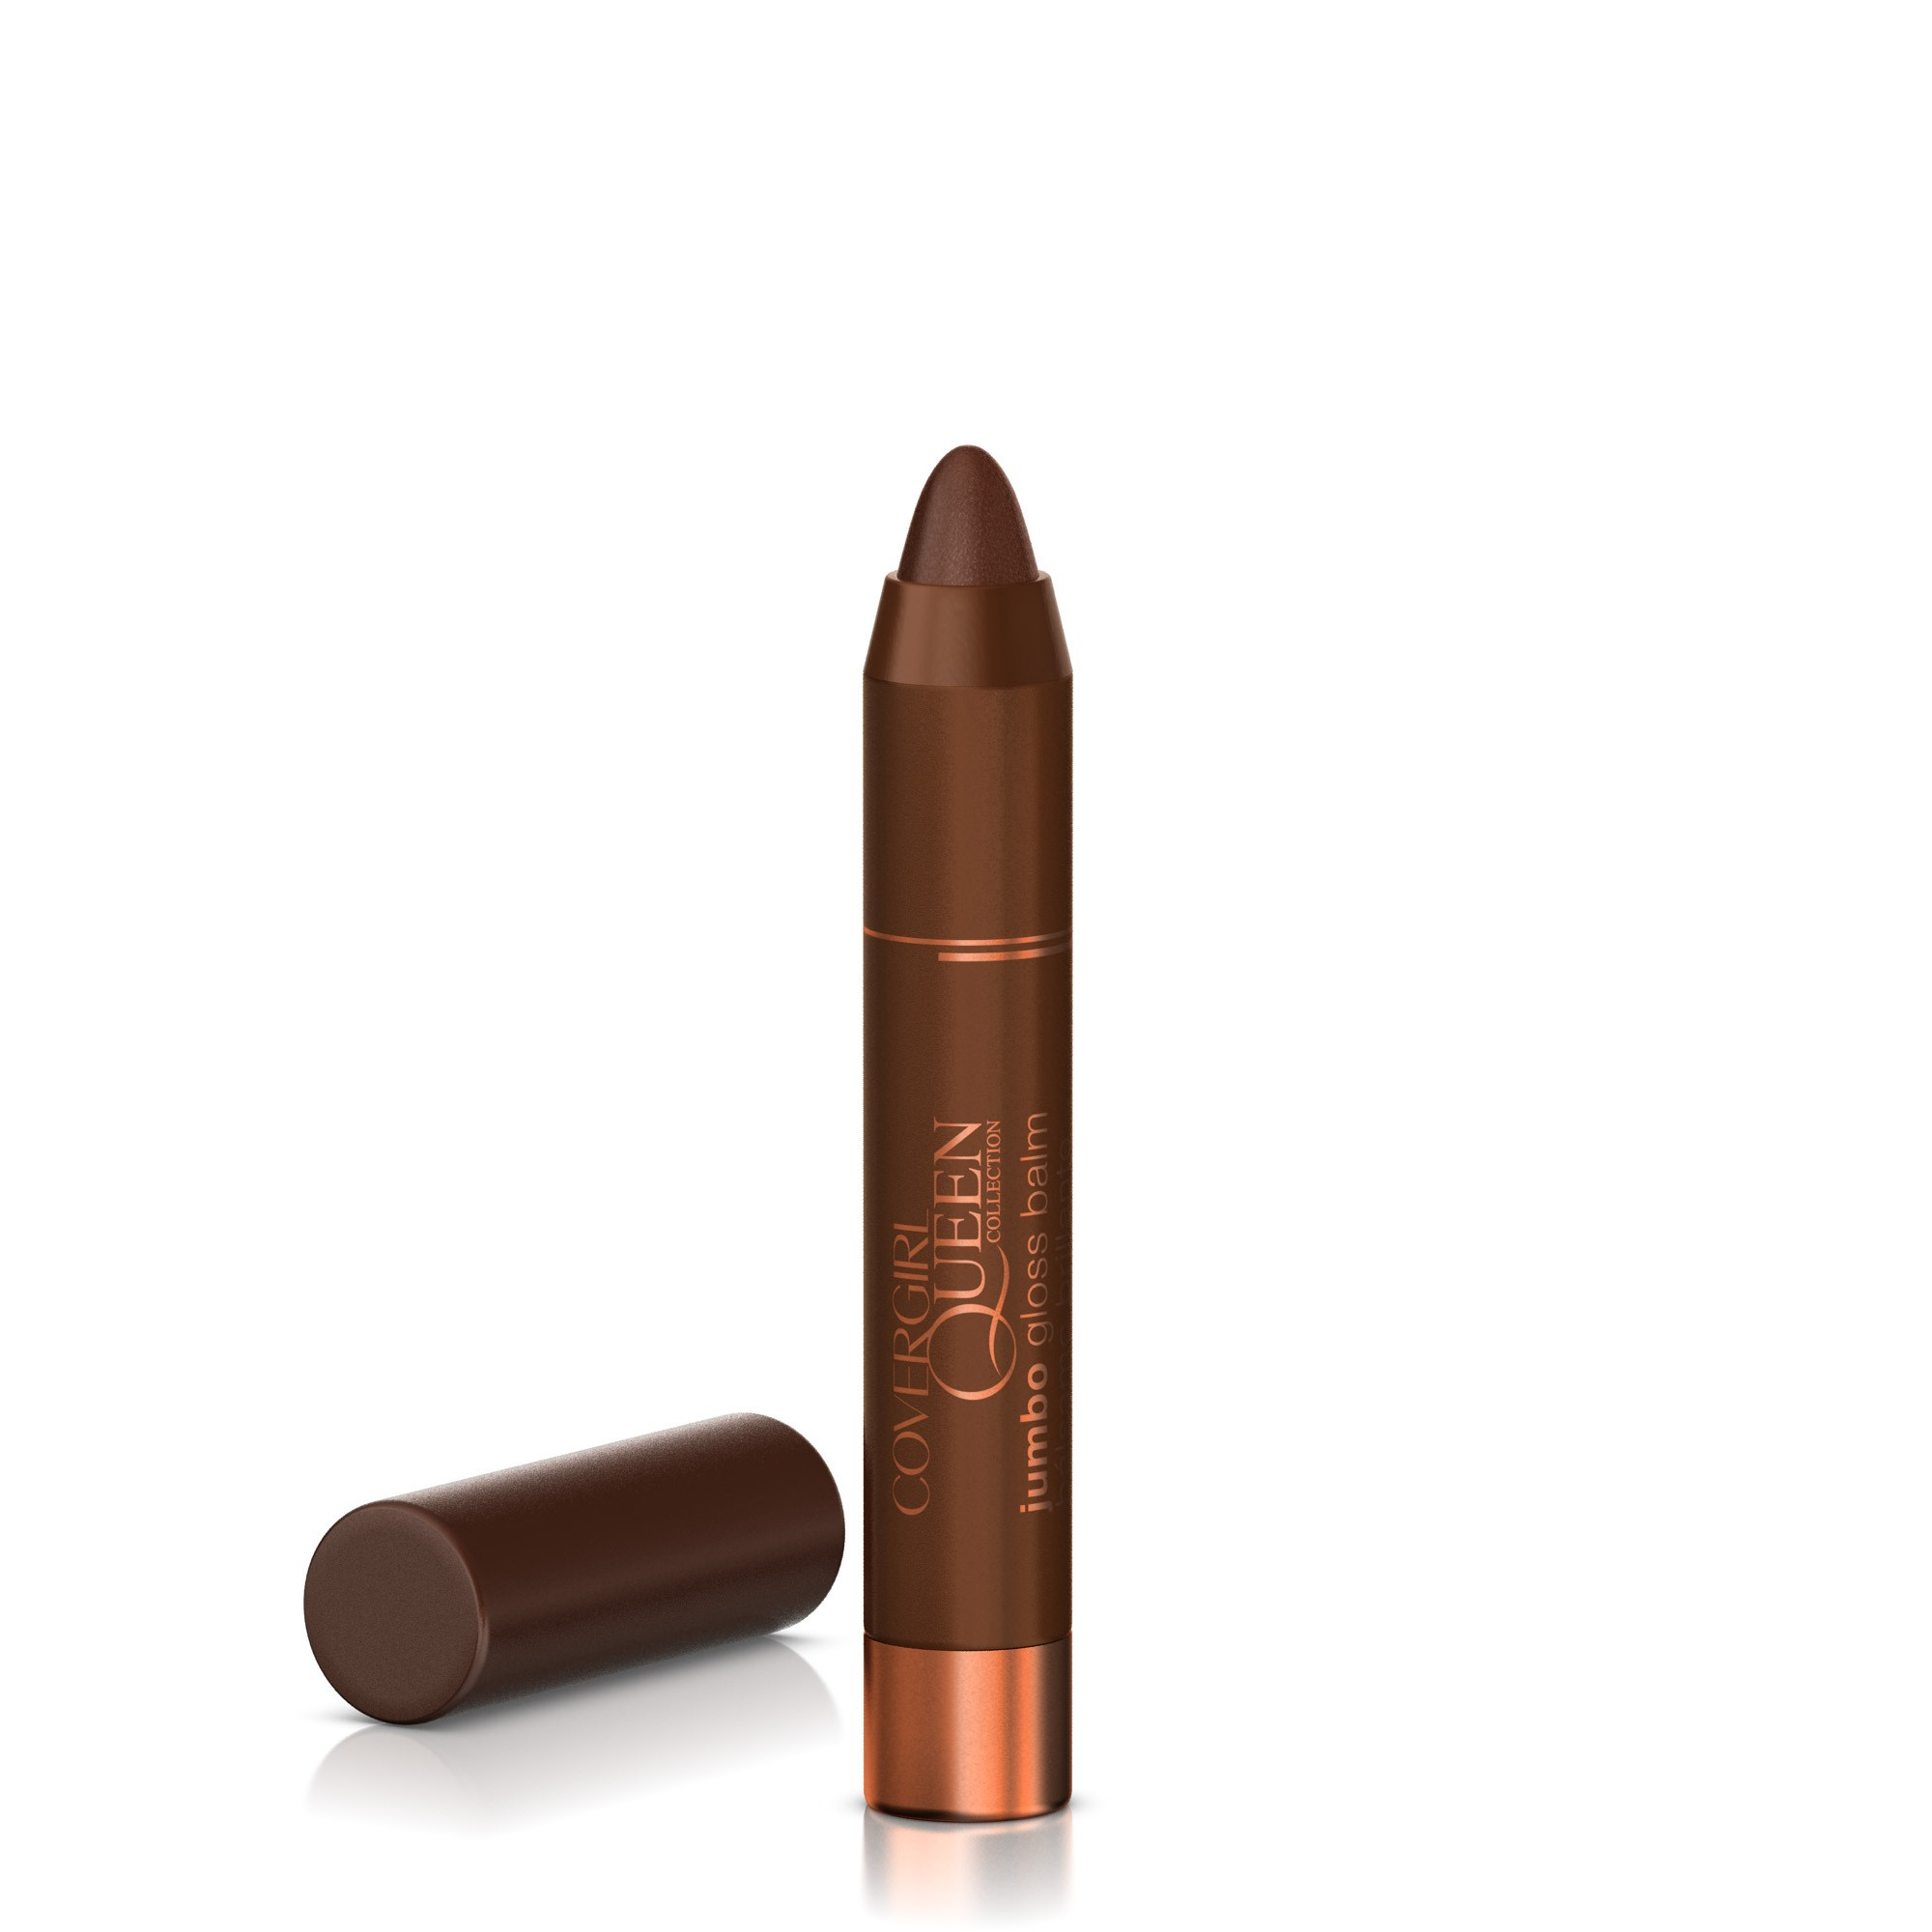 COVERGIRL Queen Collection Jumbo Gloss Balm, Bronze Bling Q875, 0.13 Oz